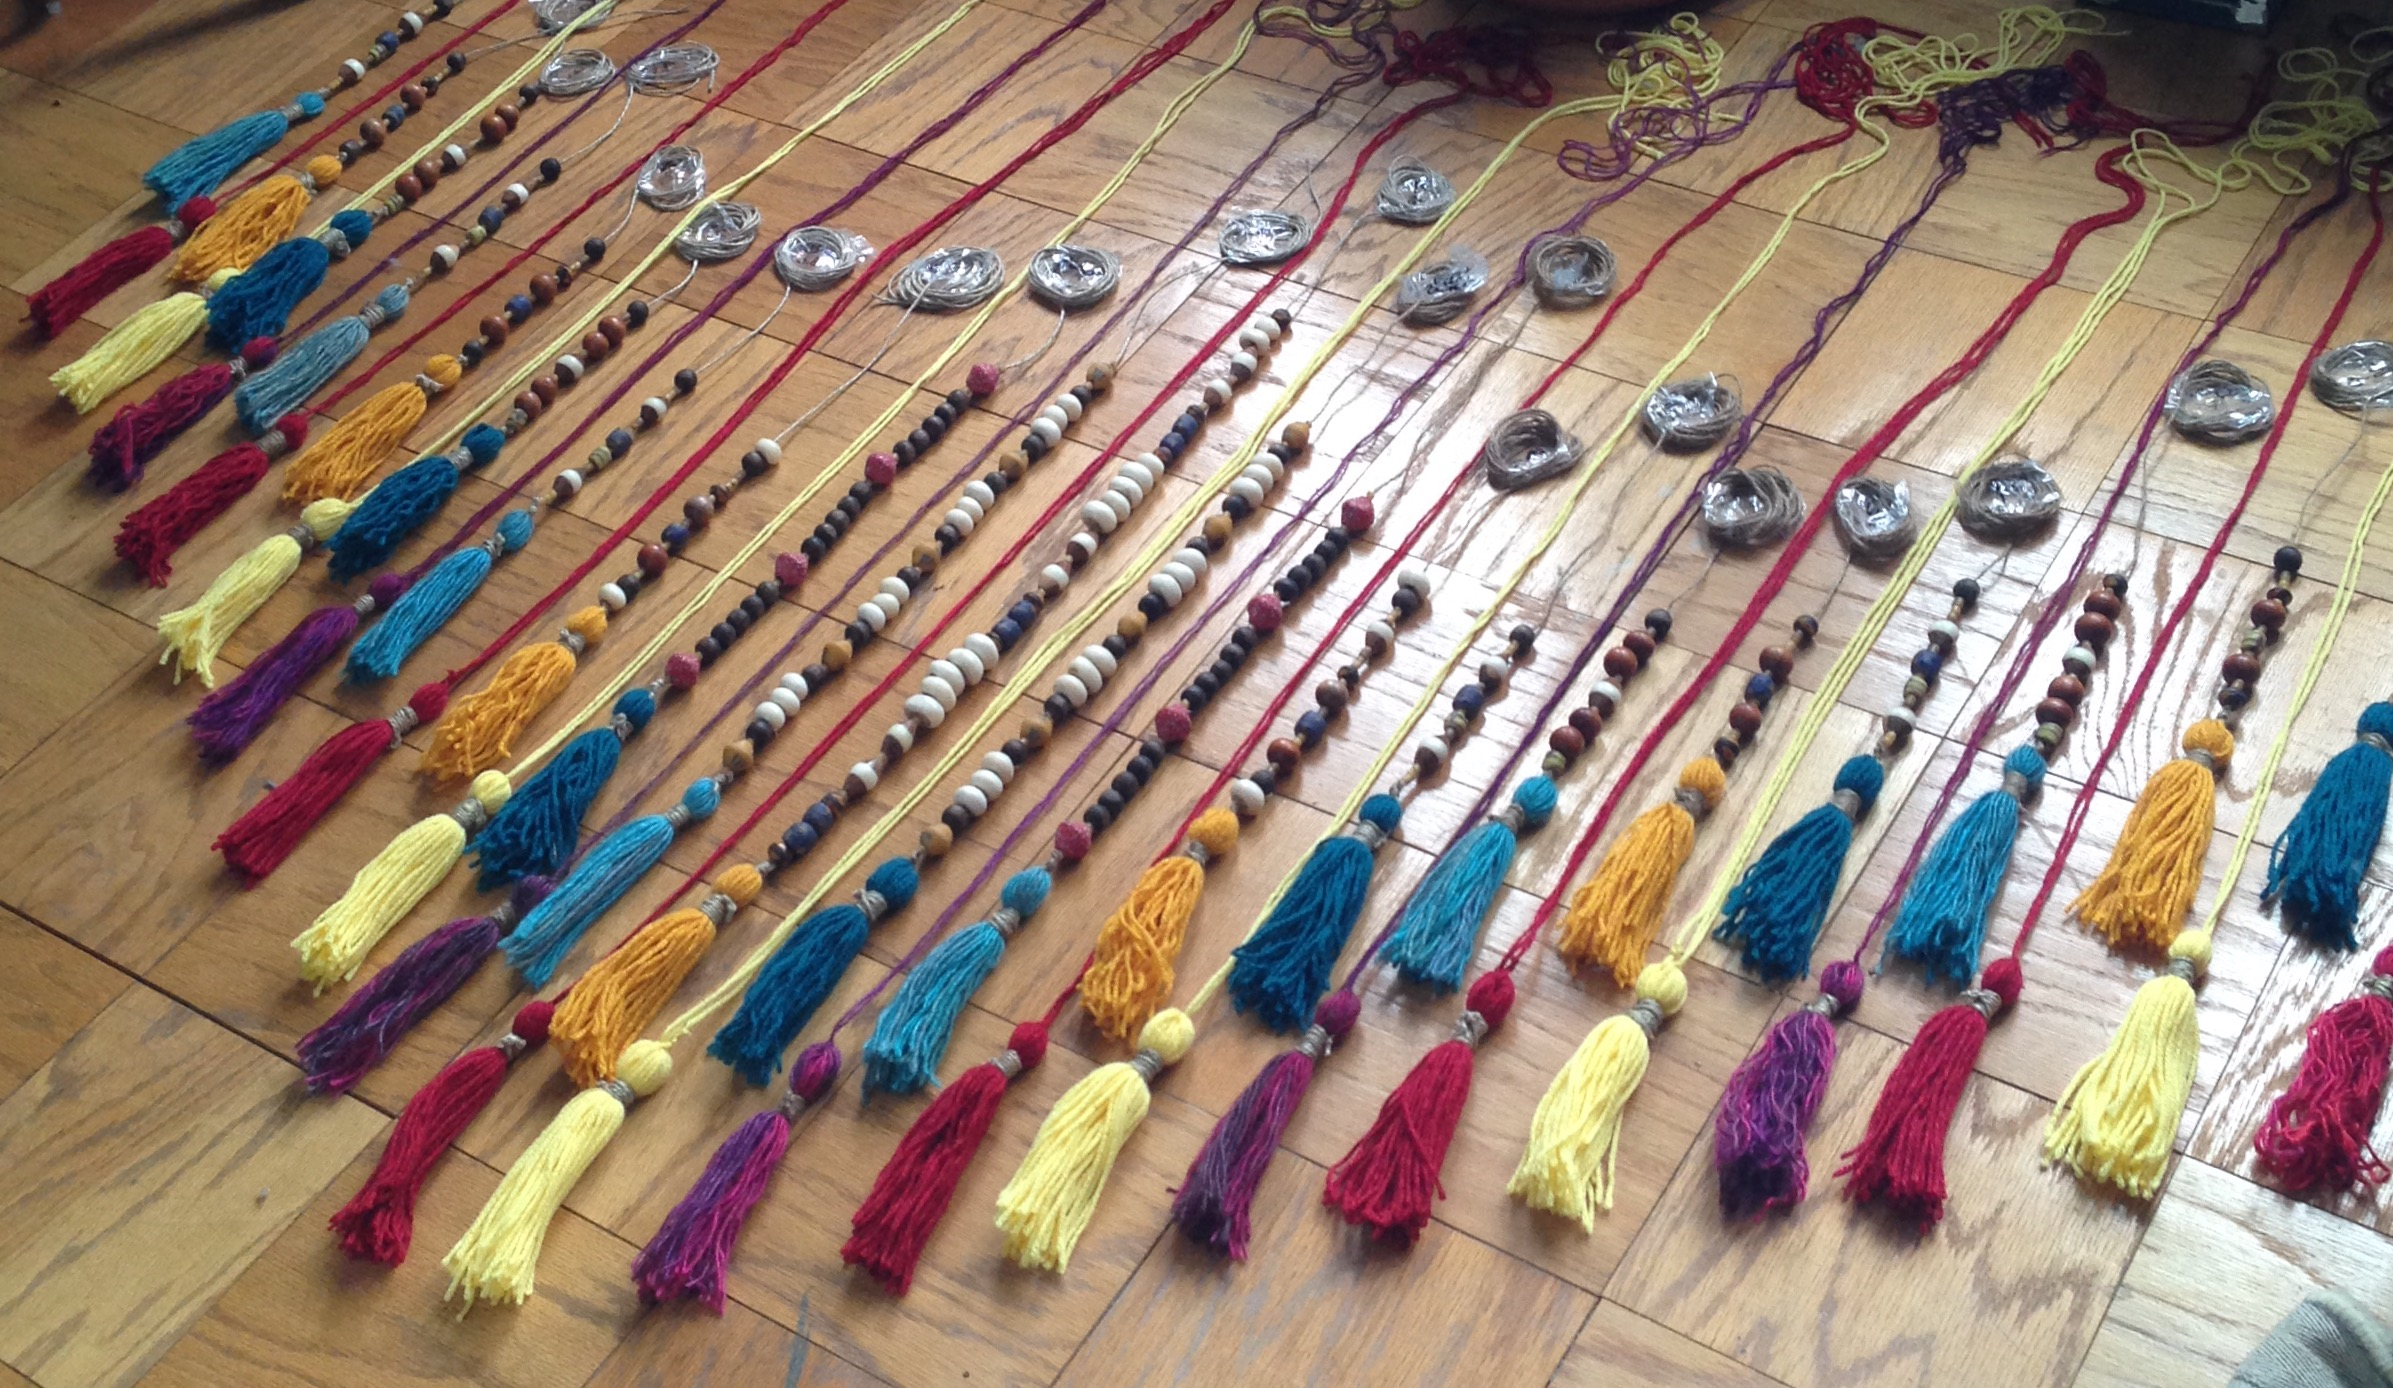 Finally,I laid it all out on my living room floor exactly how I was going to hang it up. The top row has beads on twine because the yarn alone is not strong enough to hold the weight of the beads. The bottom row is only yarn and tassels, no beads.